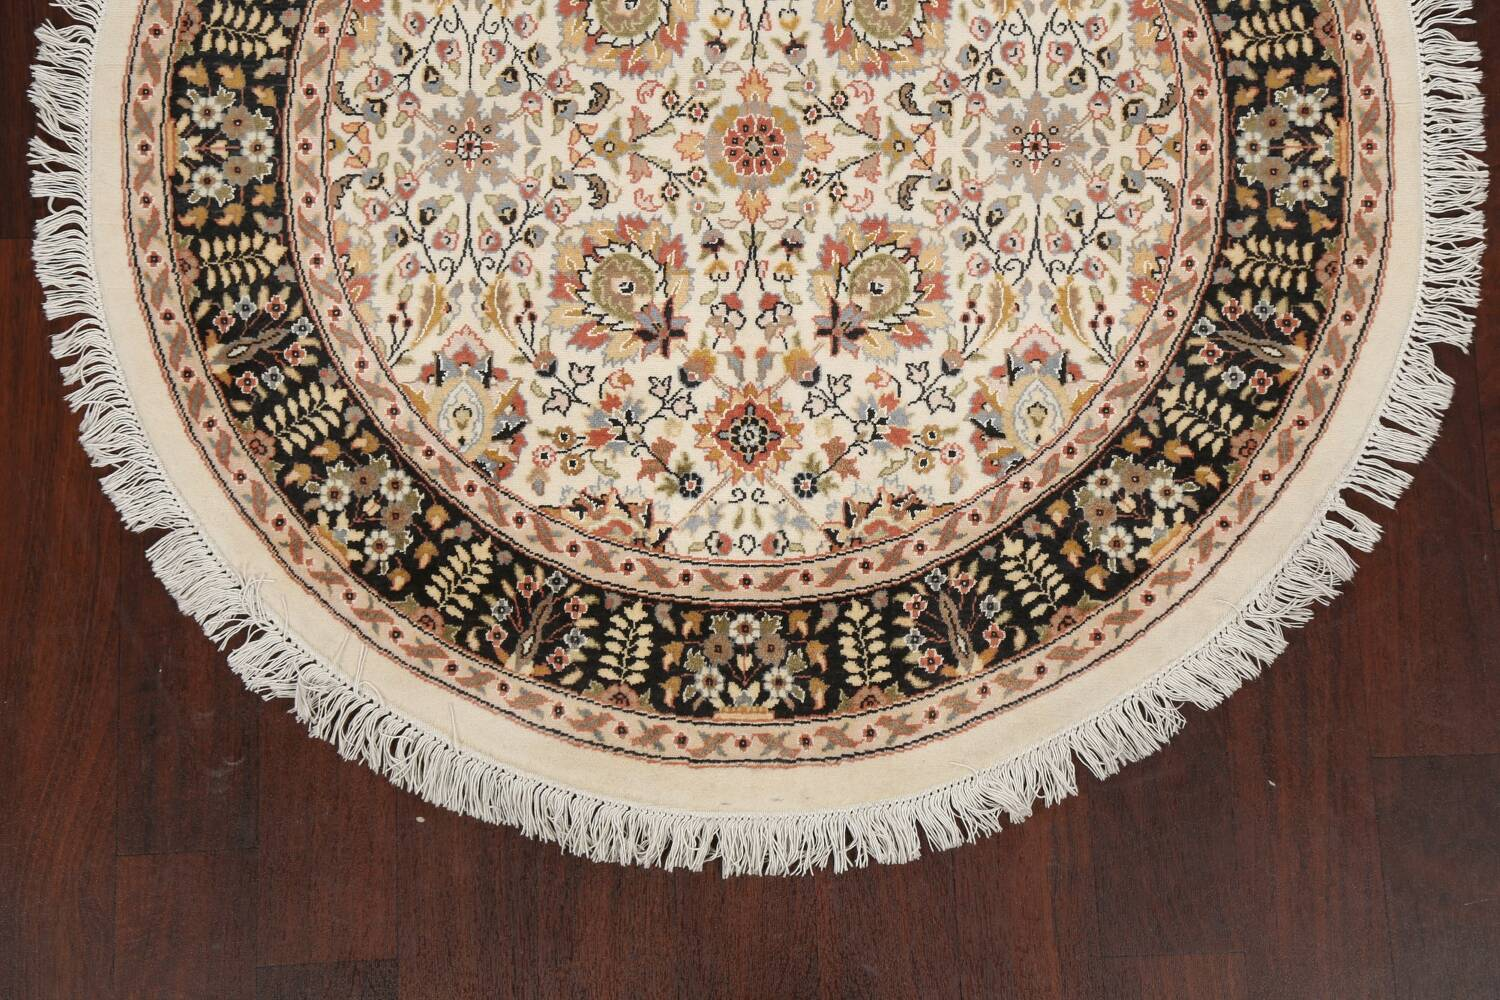 Vegetable Dye Round Royal Tabriz Oriental Area Rug 4x4 image 8